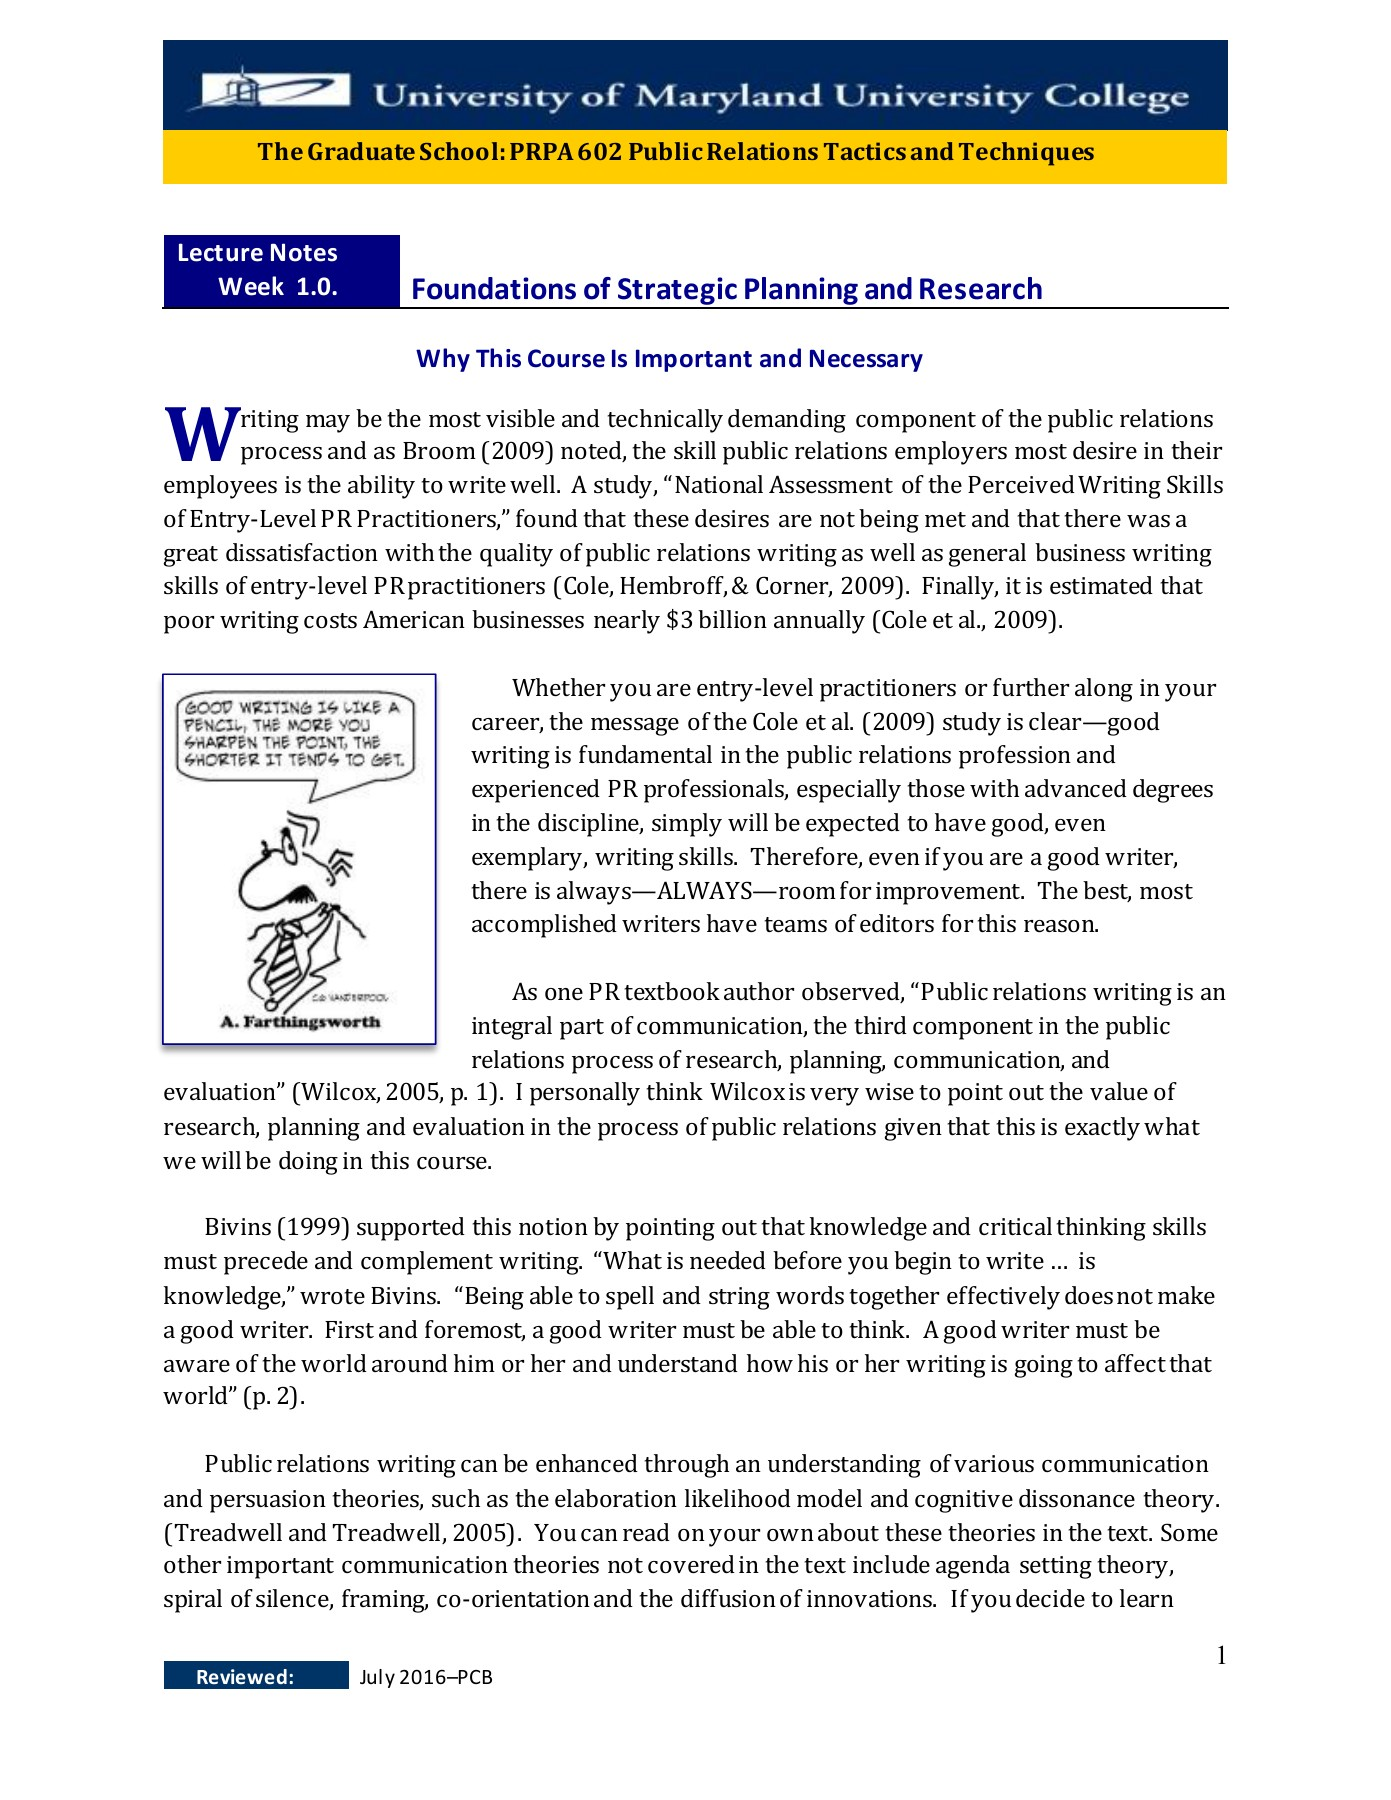 PRPA 602 LECTURE NOTES (PDF Flip) WEEK 1 0  - Foundations of